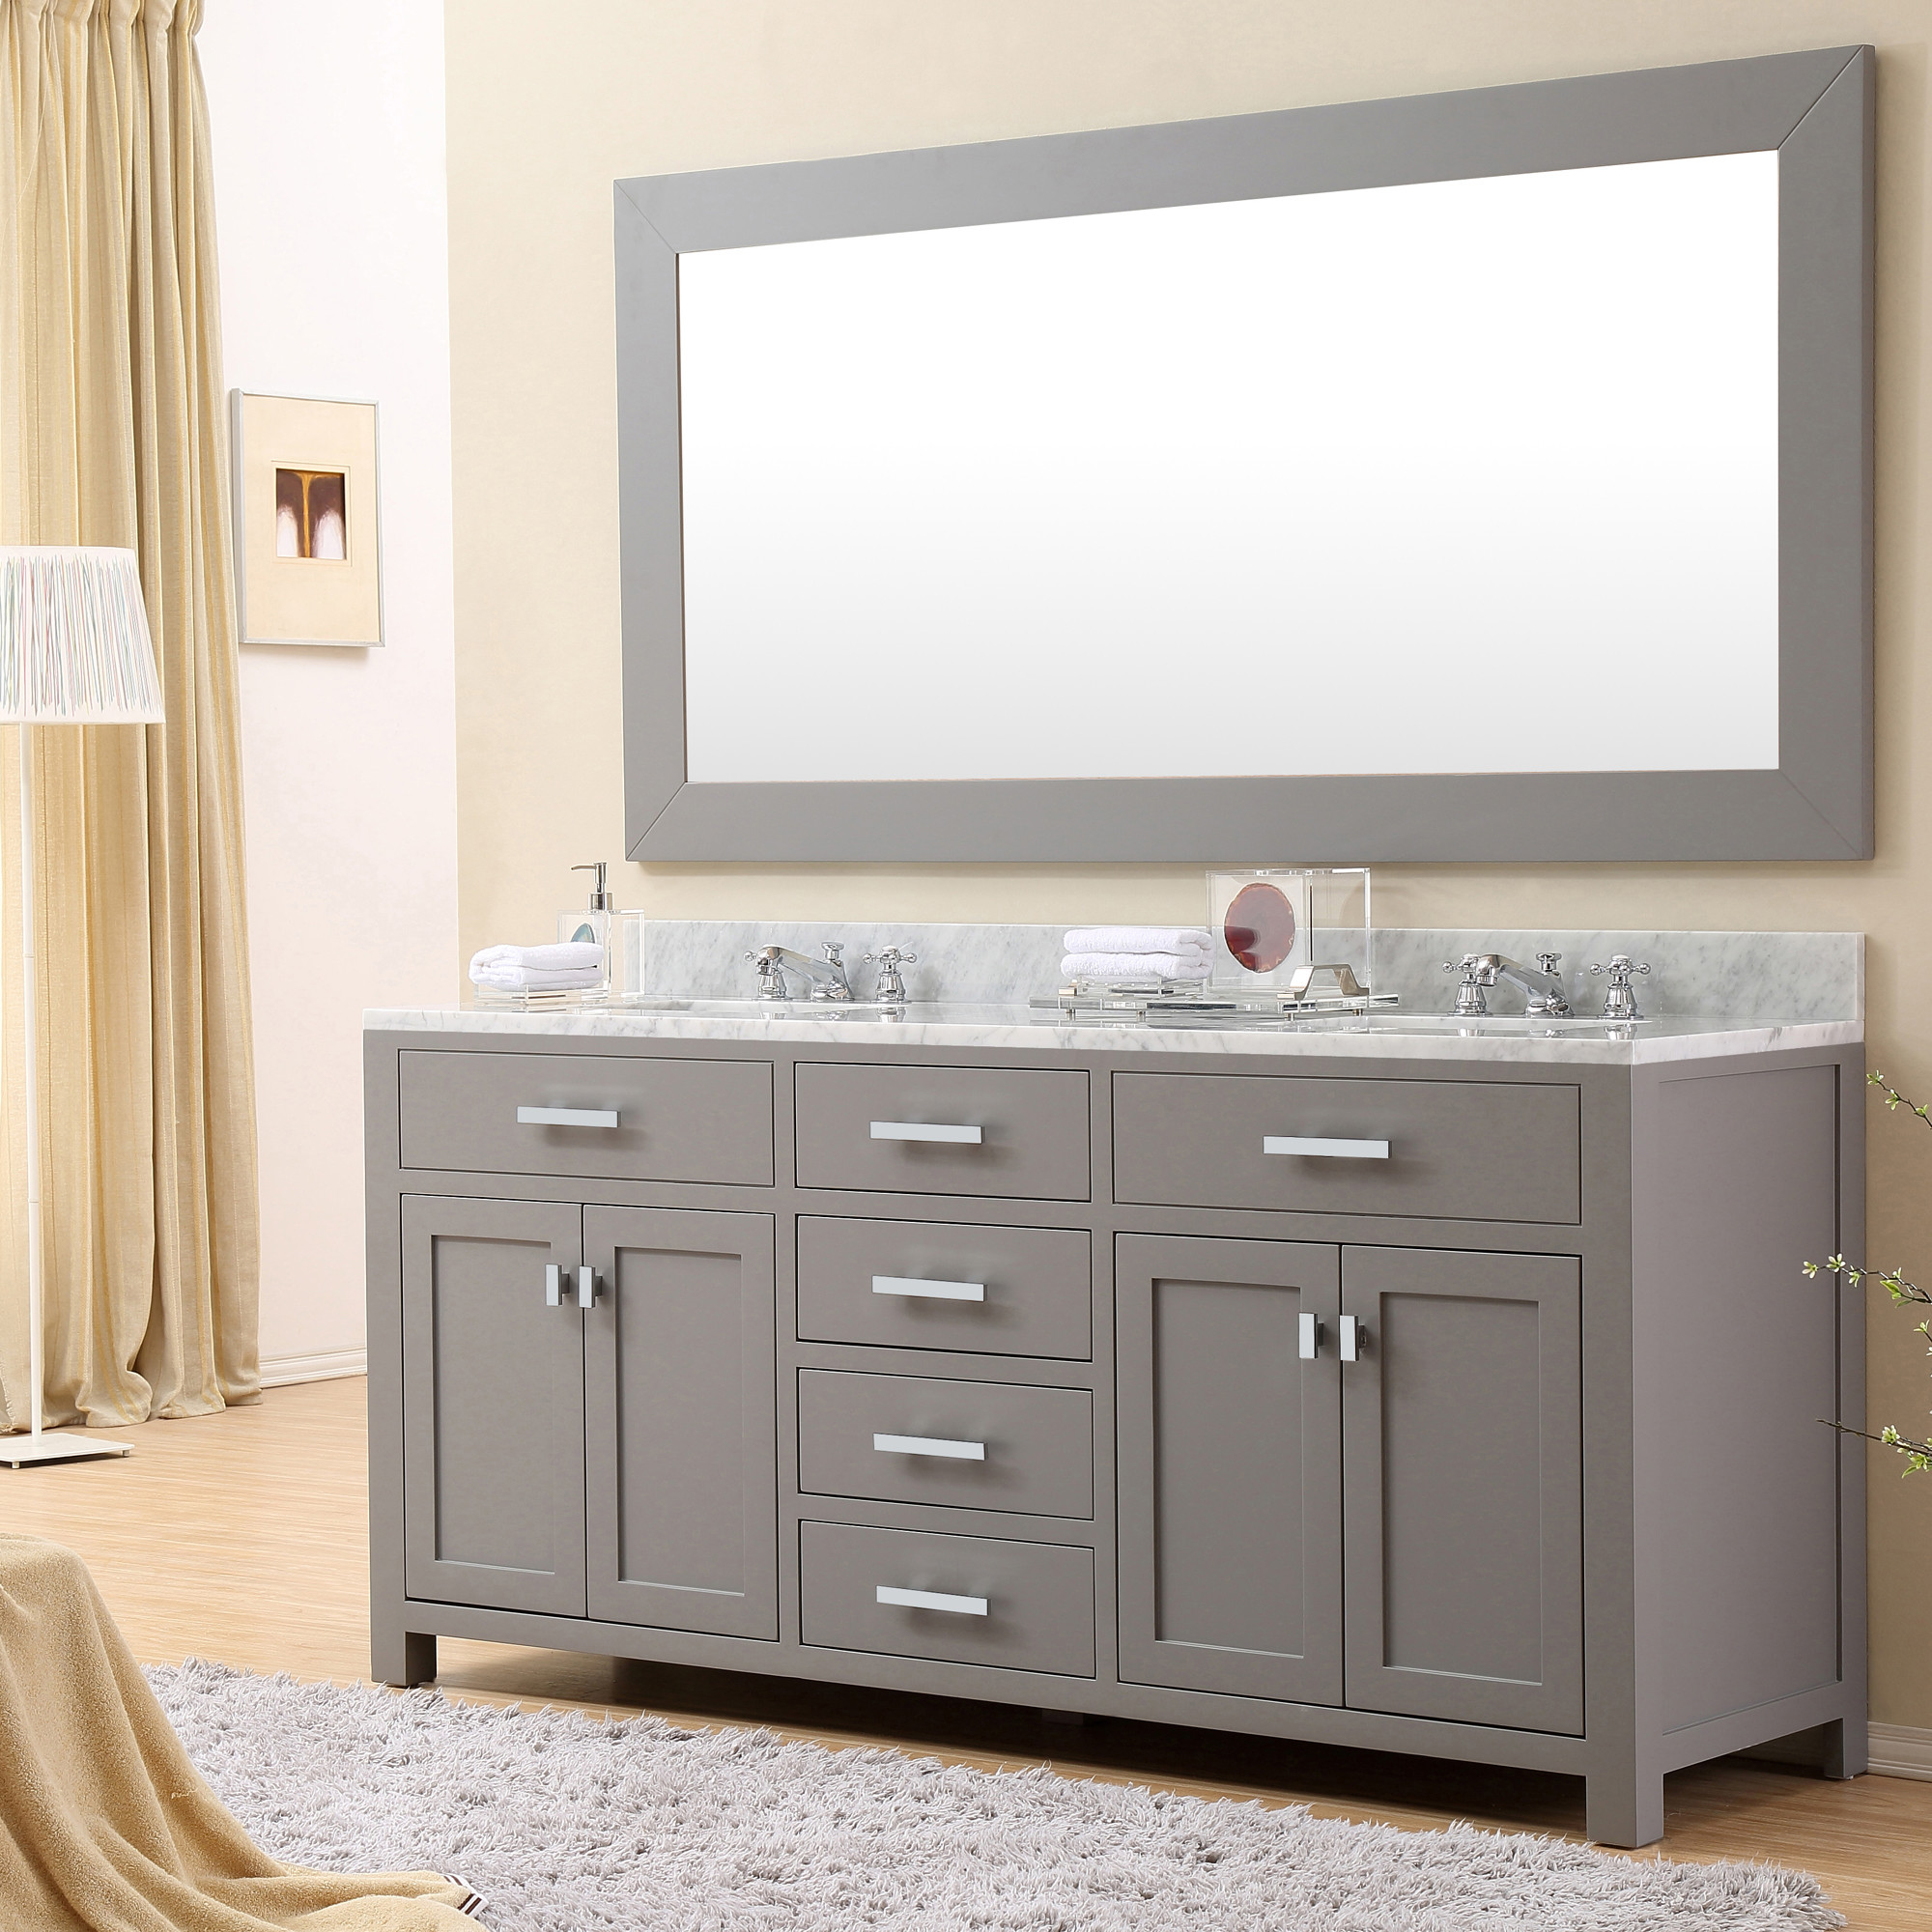 daston 72 inch gray double sink bathroom vanity, carrara white